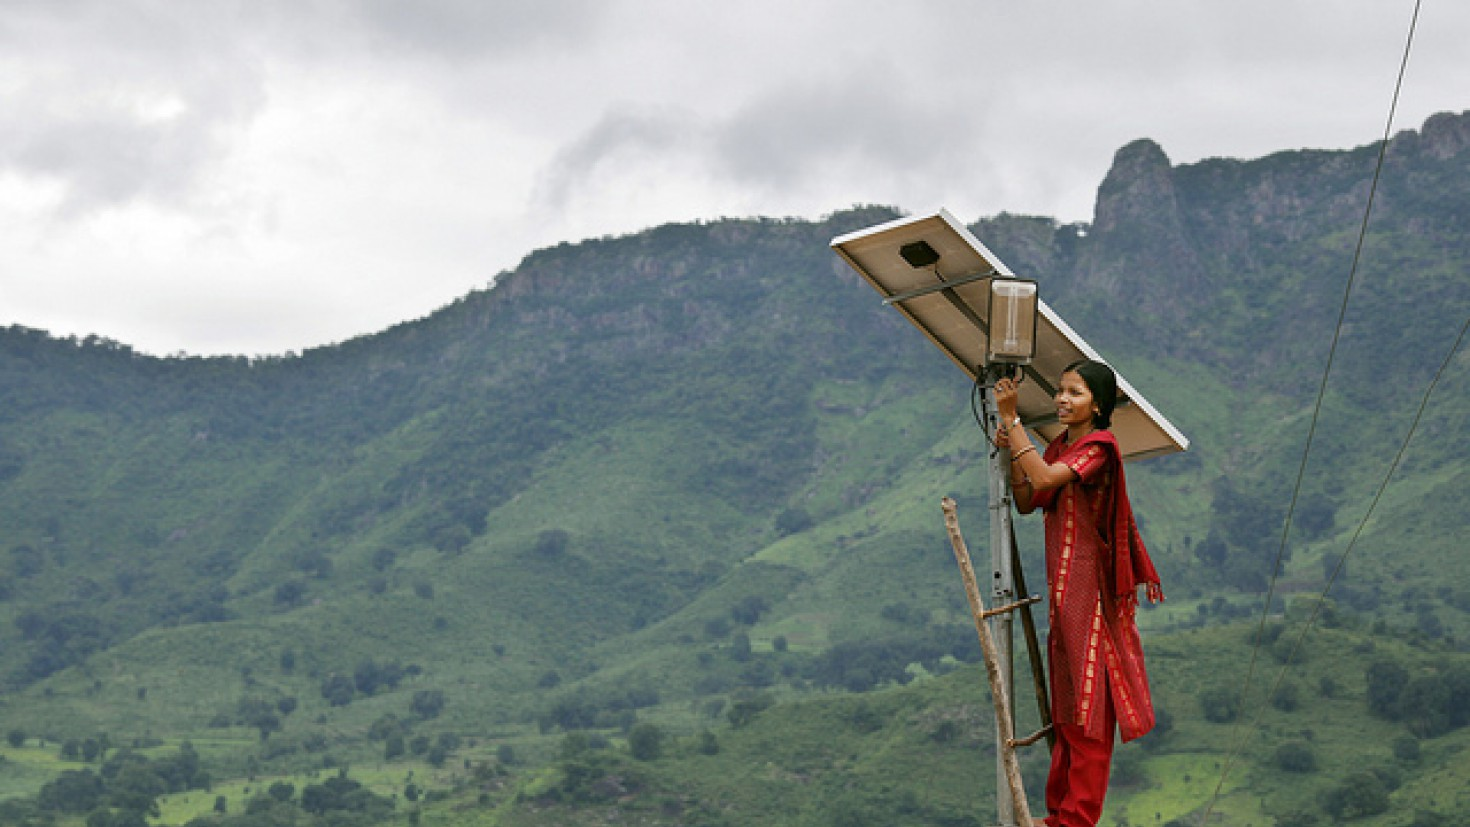 the expert network on second opinions sits on climate knowledge from across the world. Photo: SOLAR energy project in India byUK Department for International Development